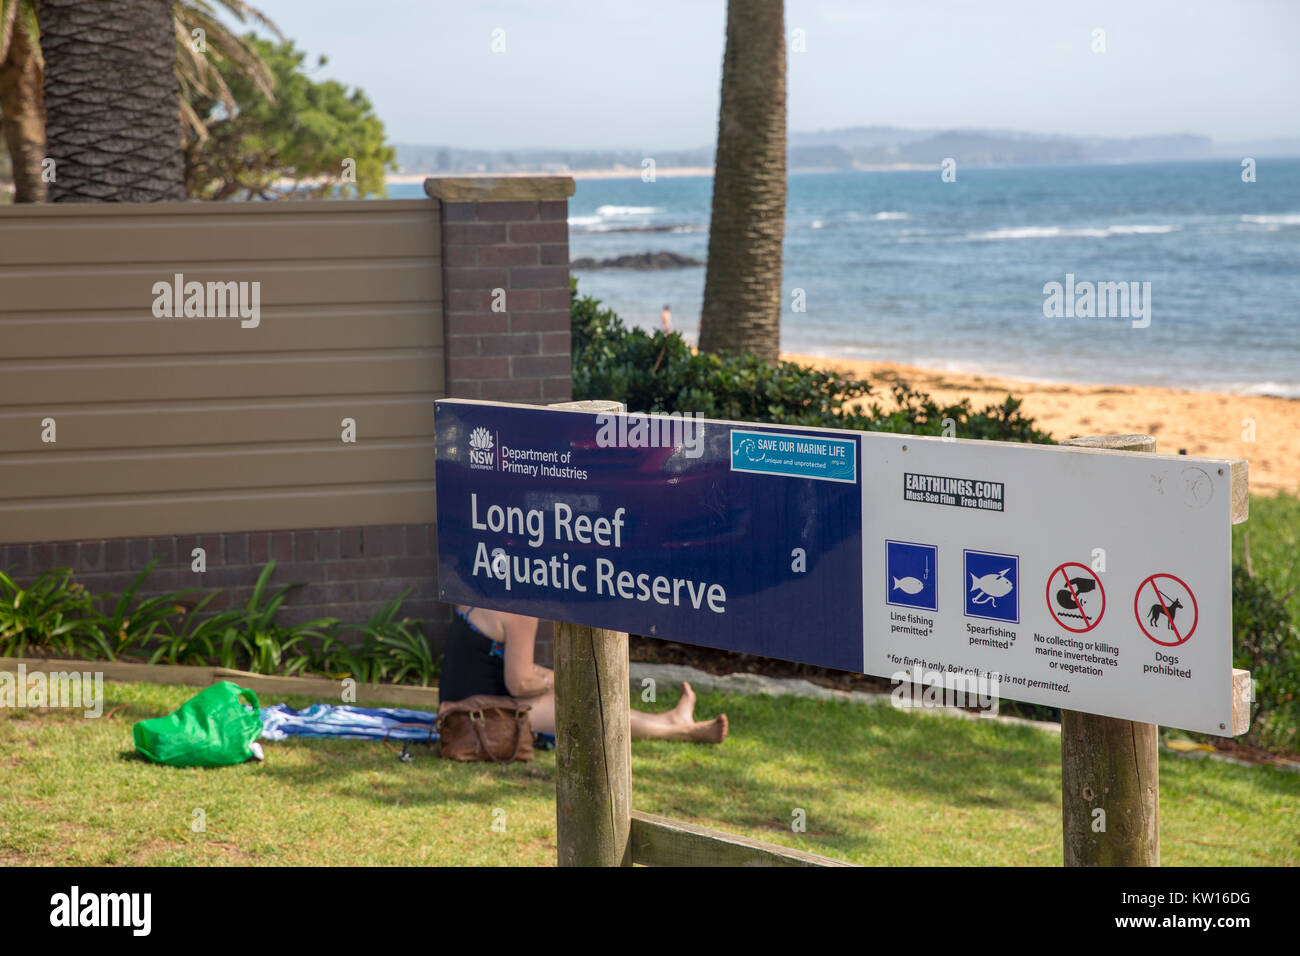 Sign at Long Reef Acquatic Reserve in Collaroy on Sydney